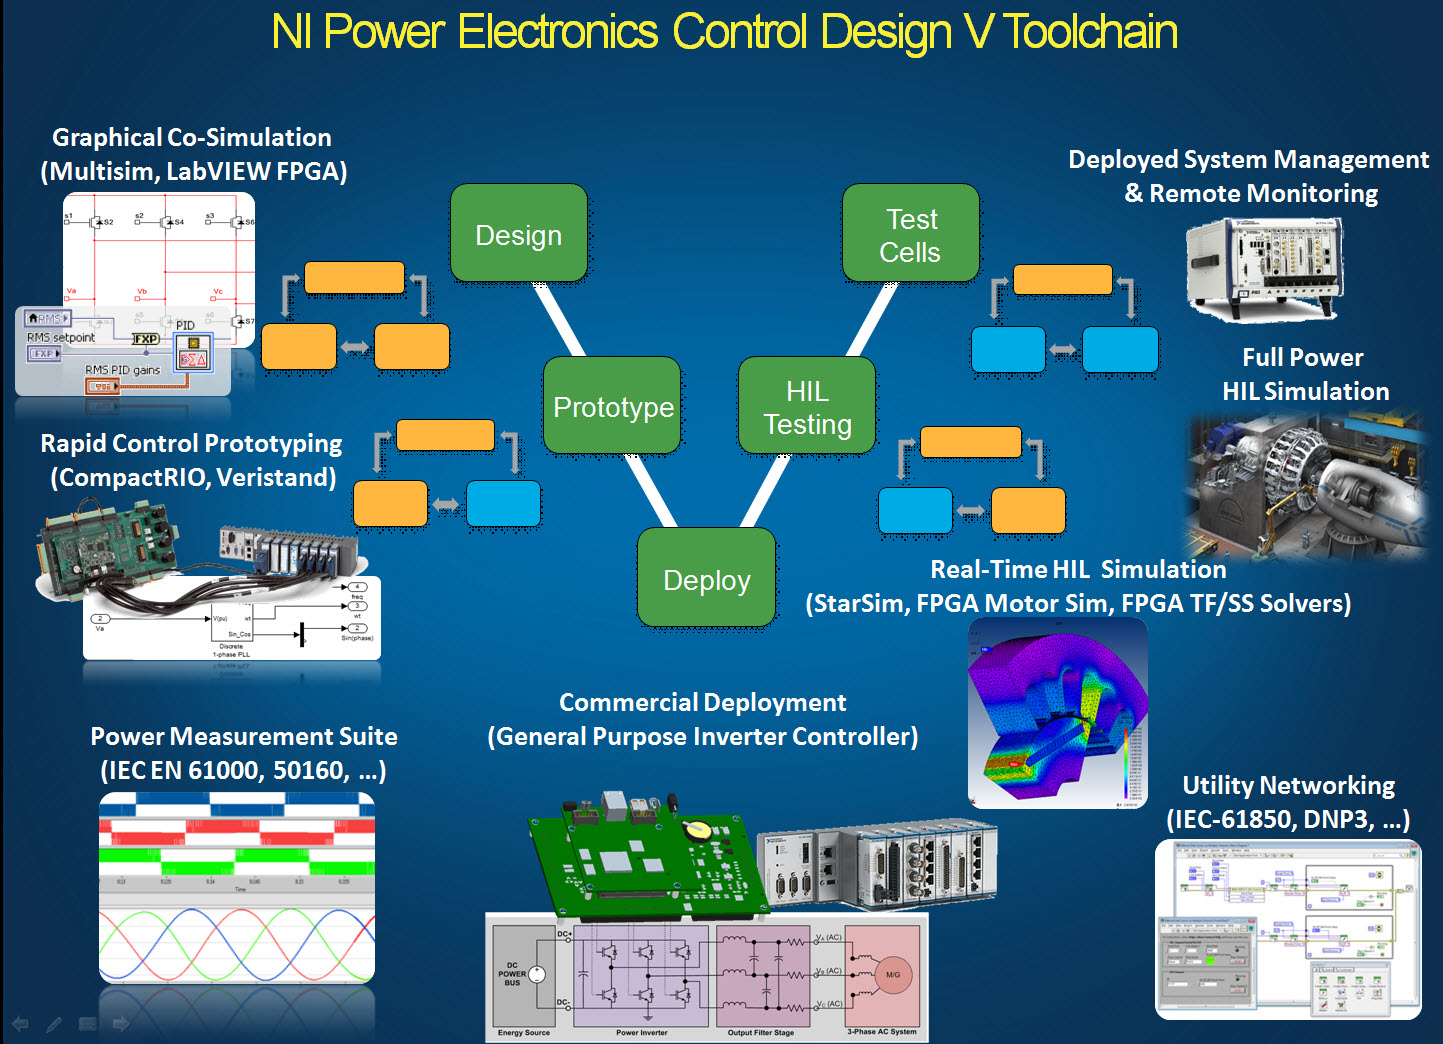 NI Power Electronics Control Design V Training Course - Discussion Forums -  National Instruments